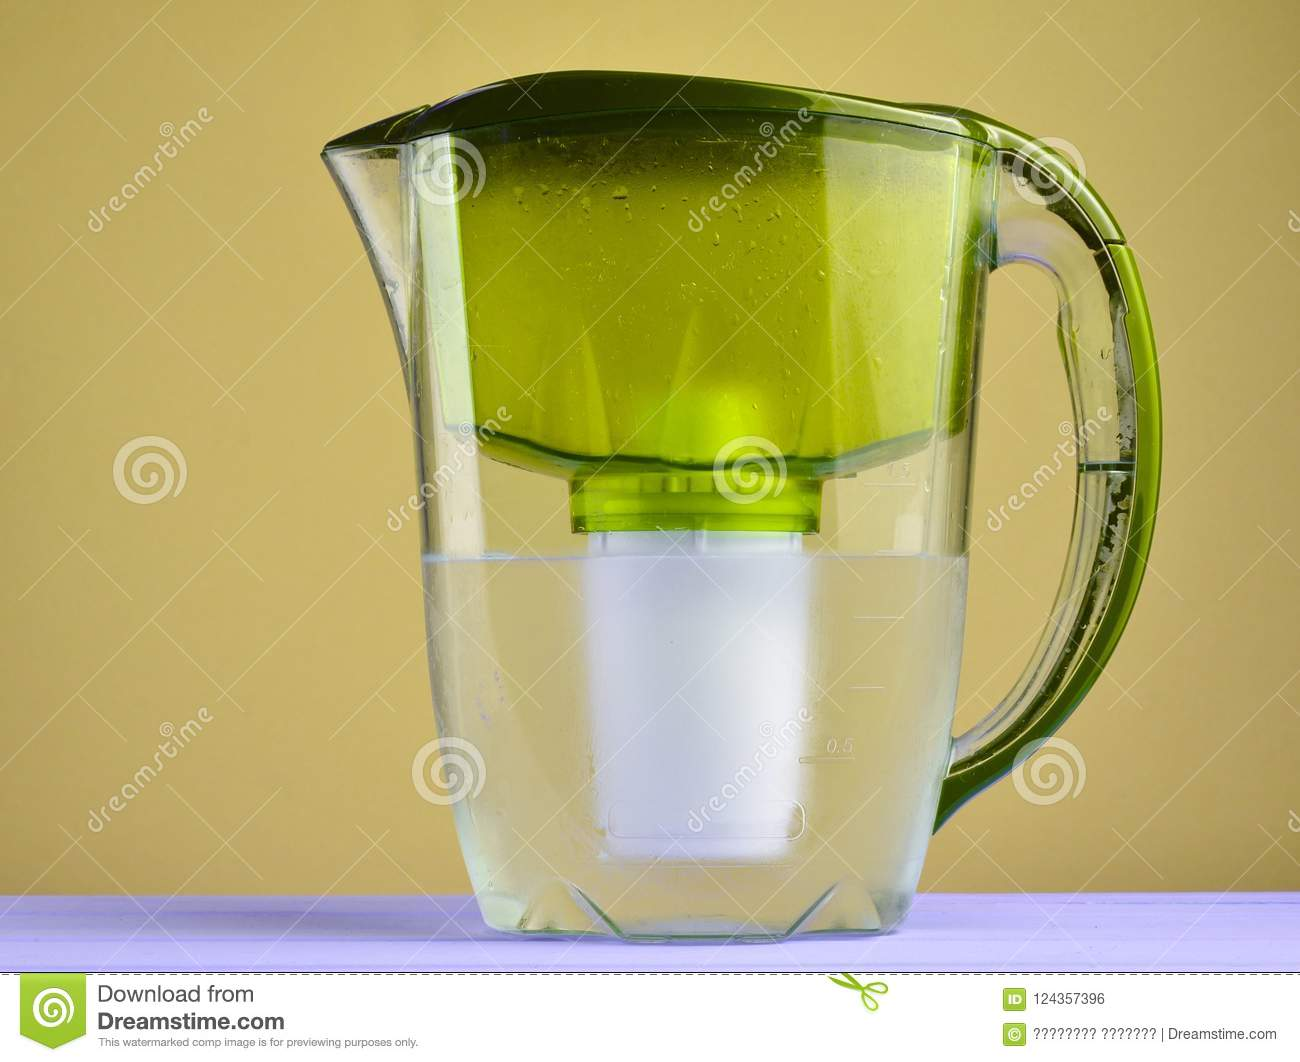 Water filter jug stock photo  Image of filtration, clear